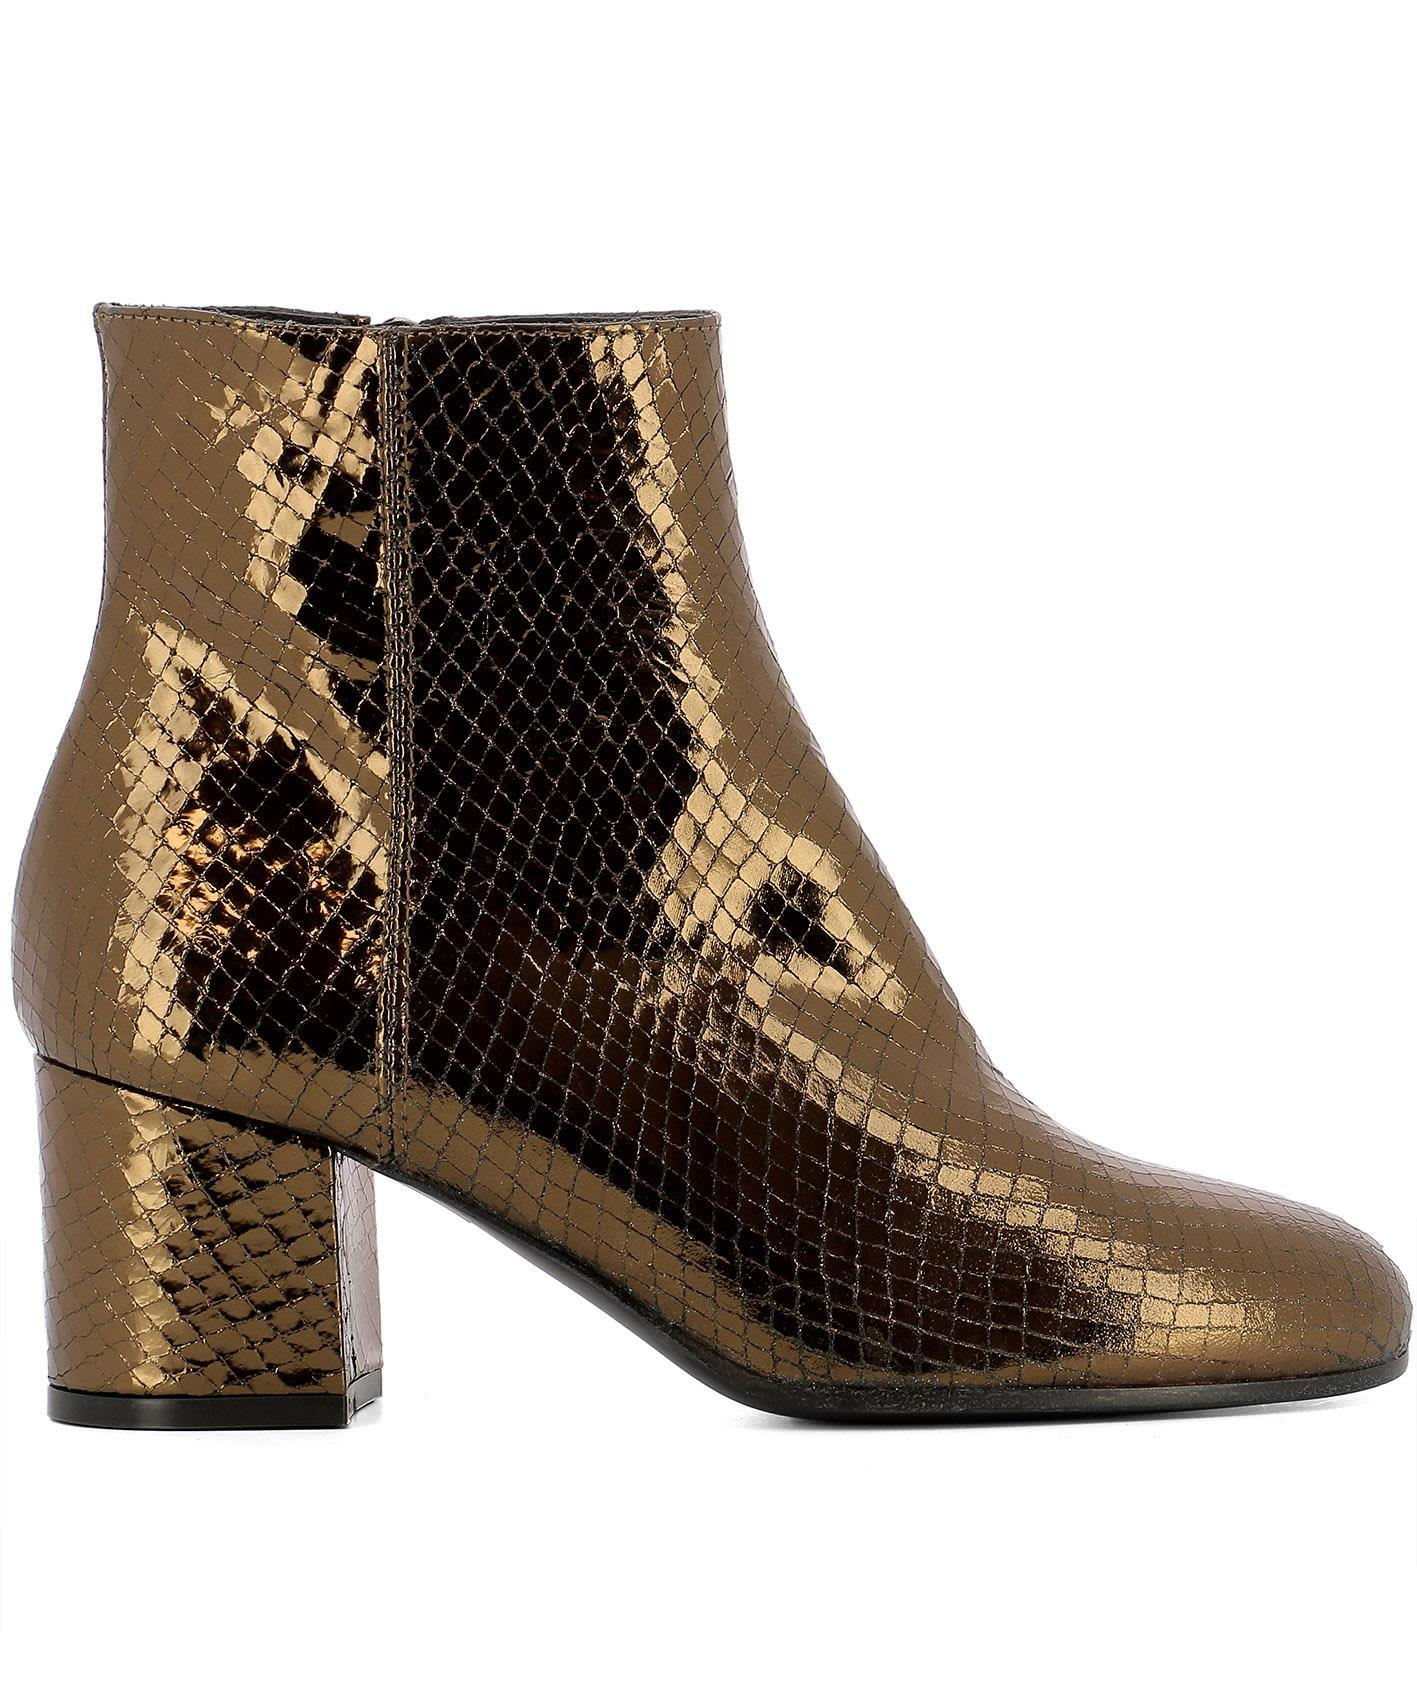 Paris Texas Bronze Leather Ankle Boots In Gold